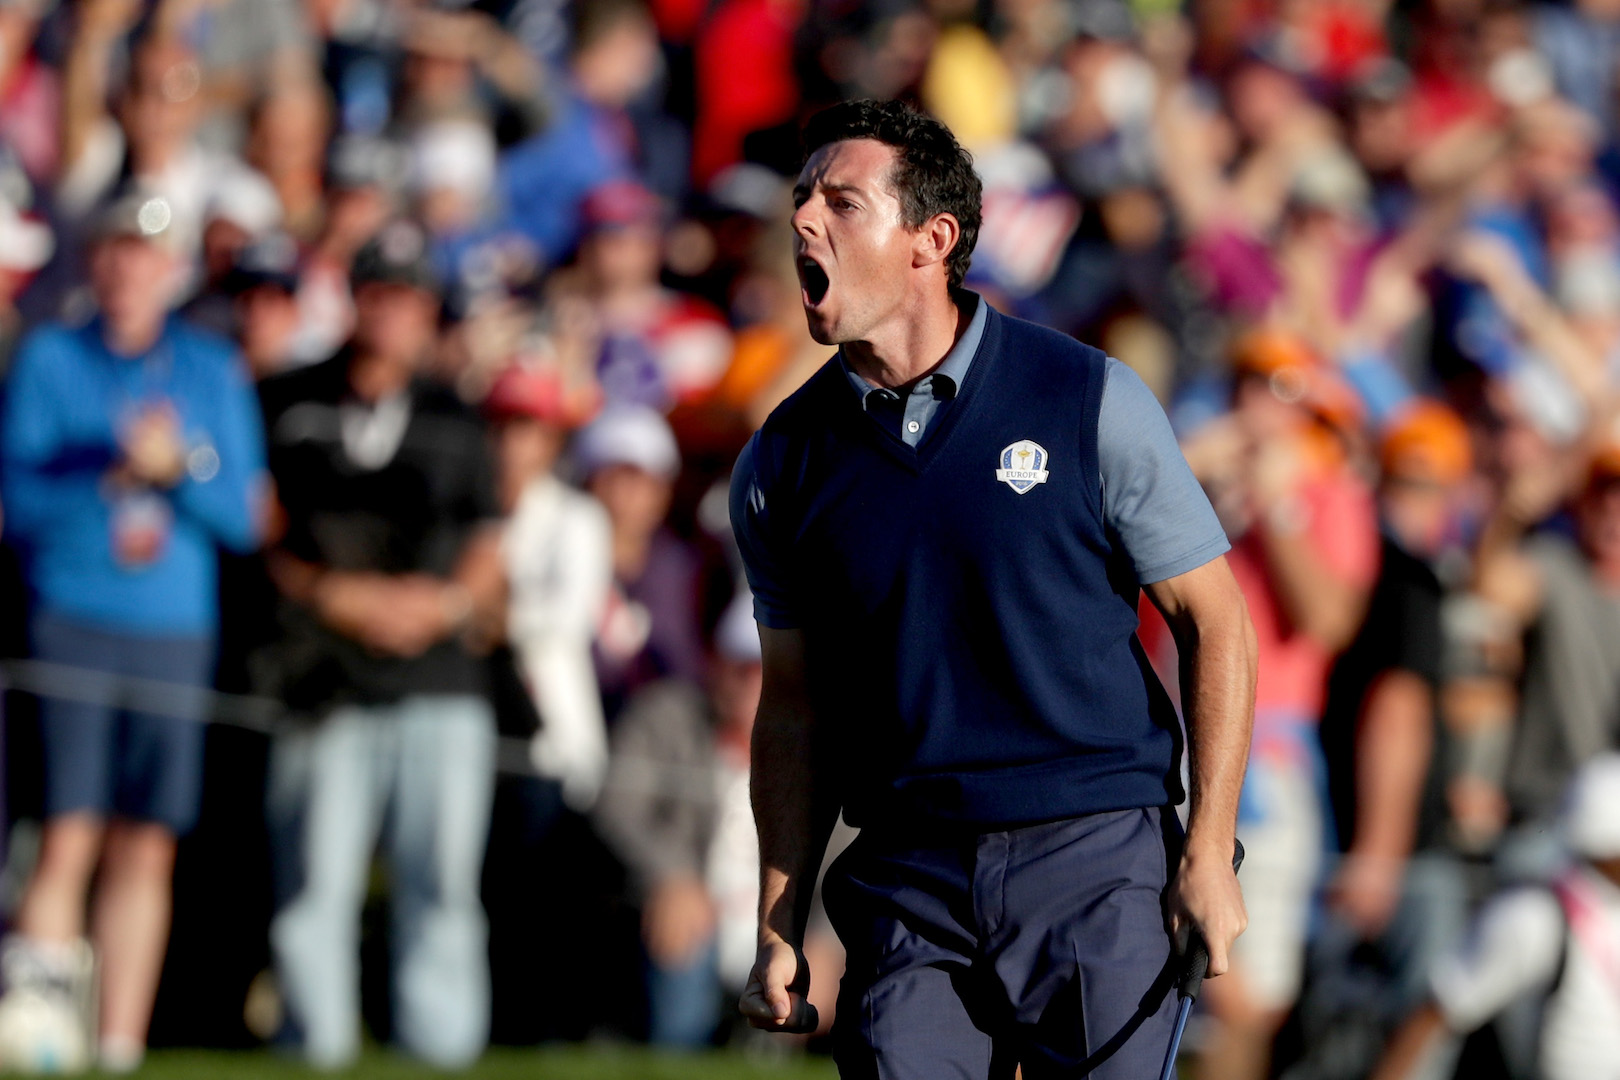 Ryder Cup Day 1: Game On!!!